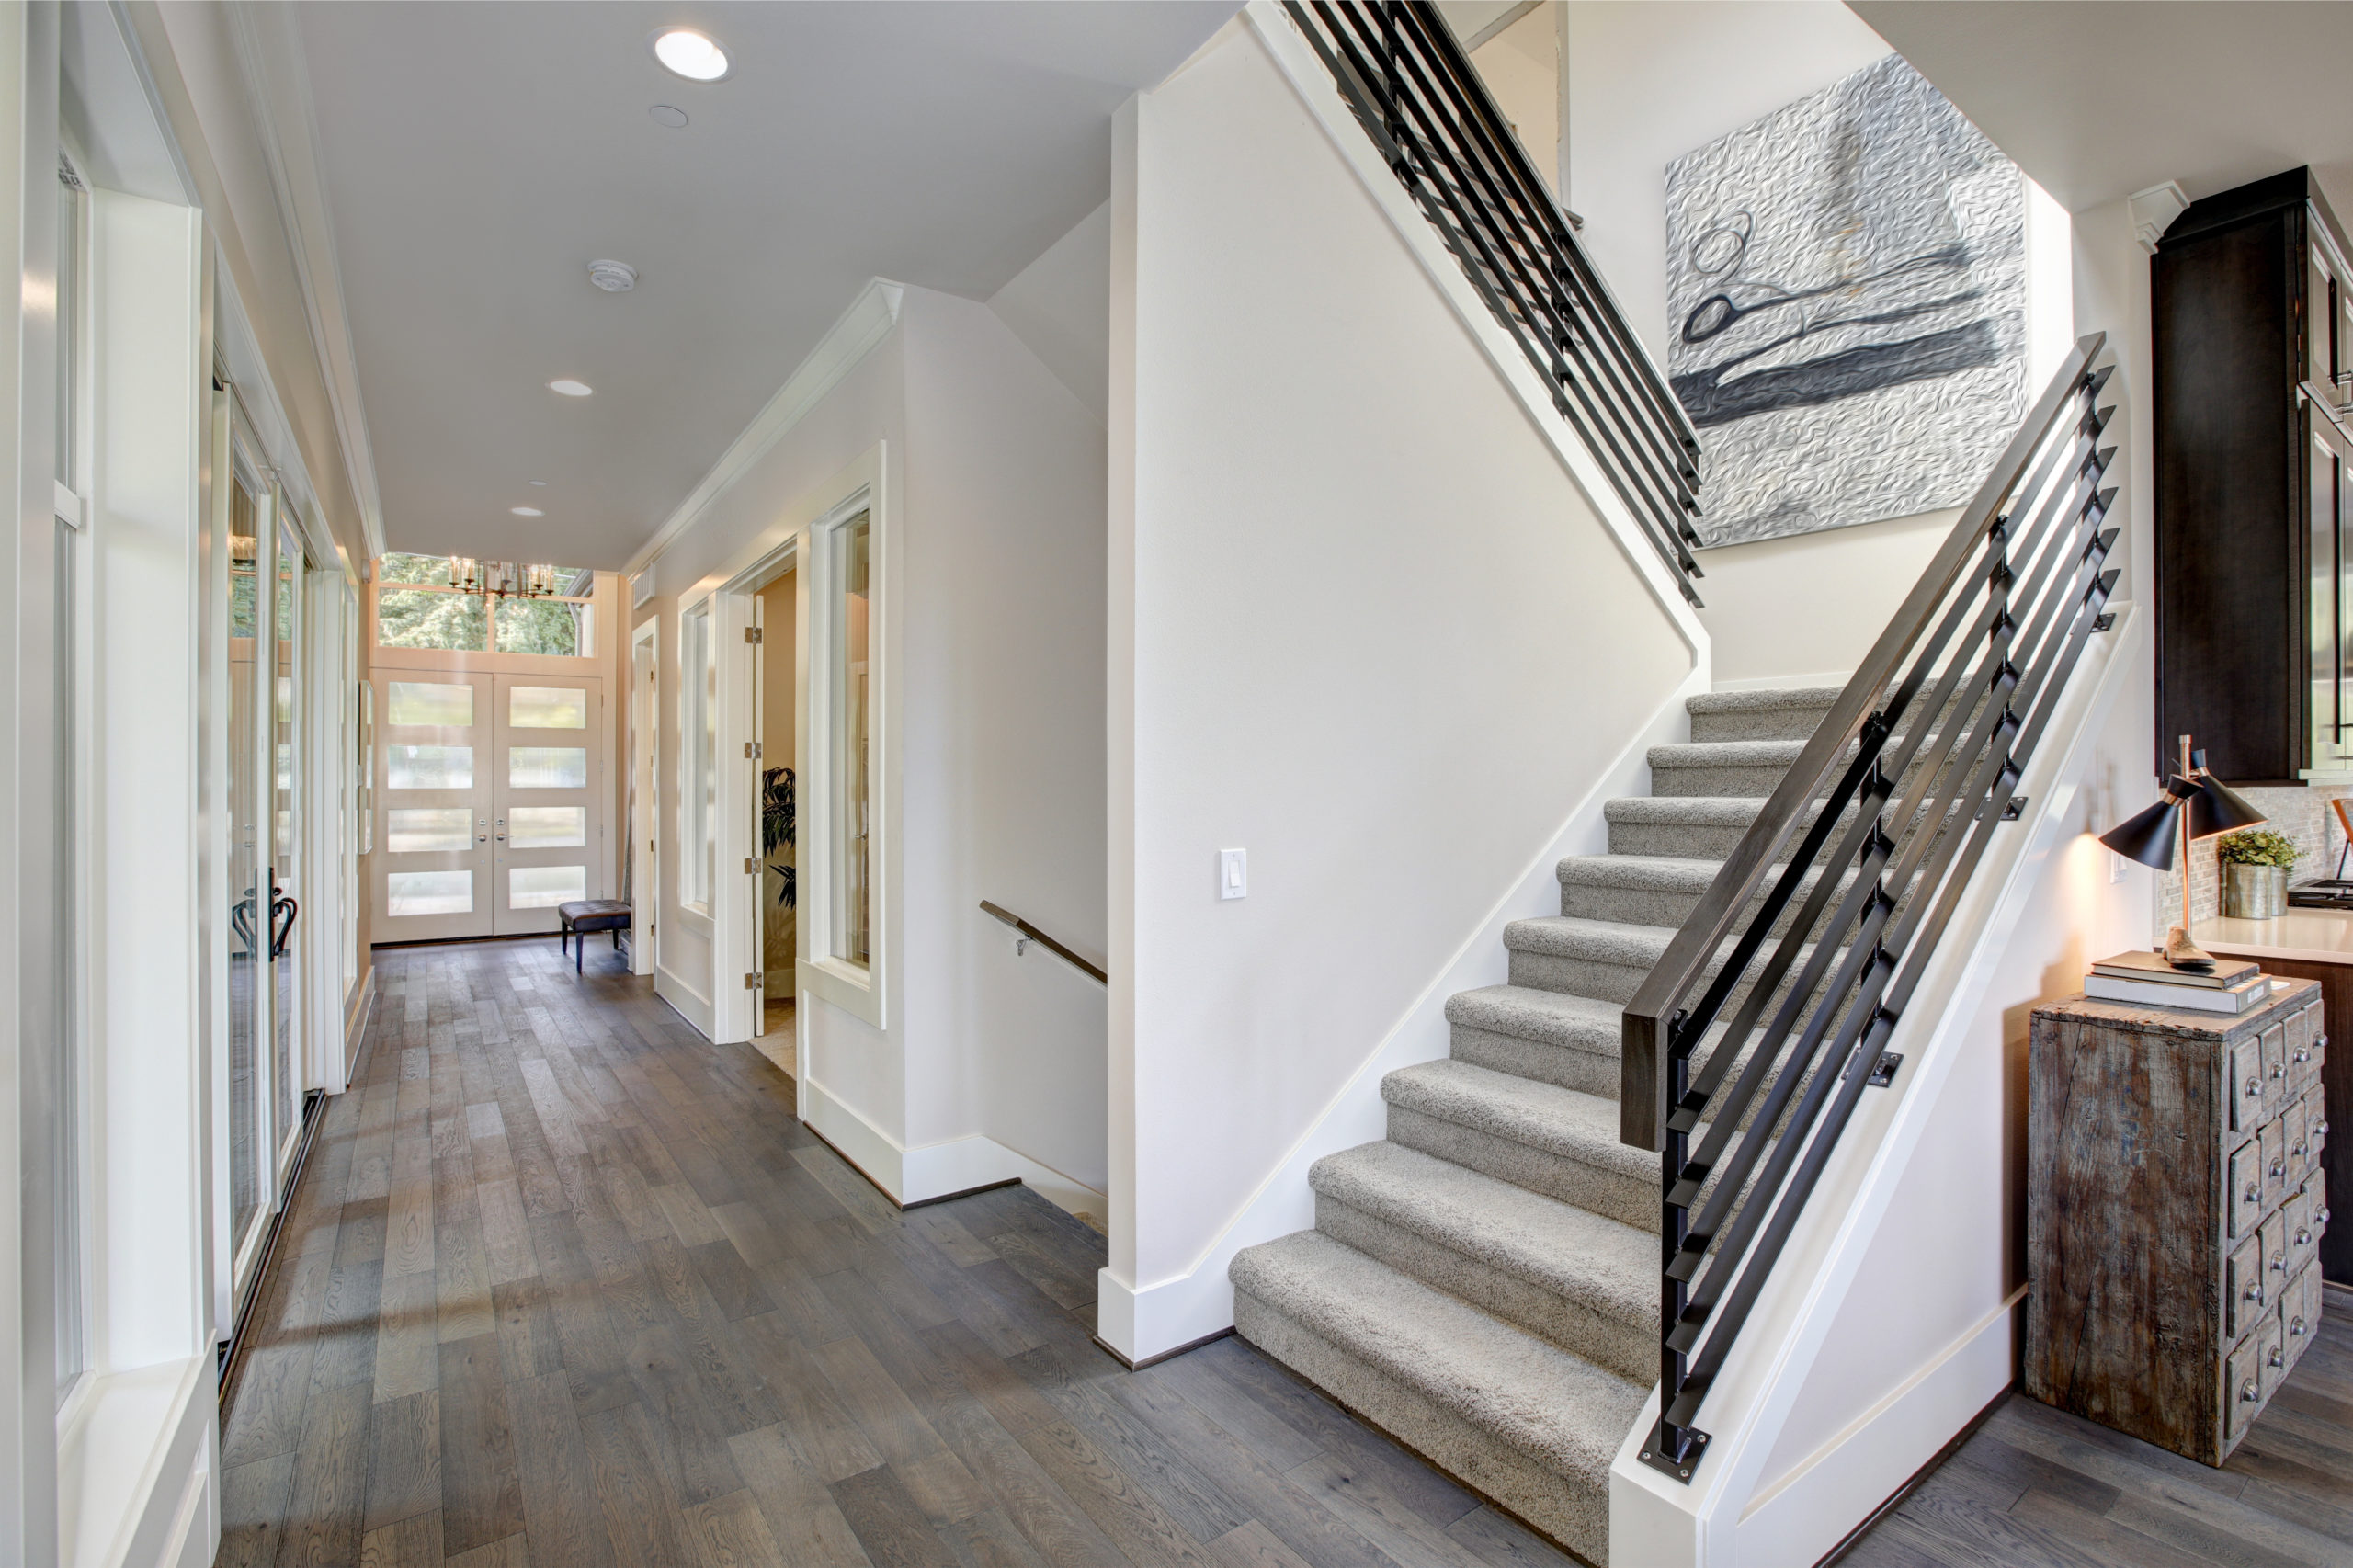 Revamping your home's indoor staircase